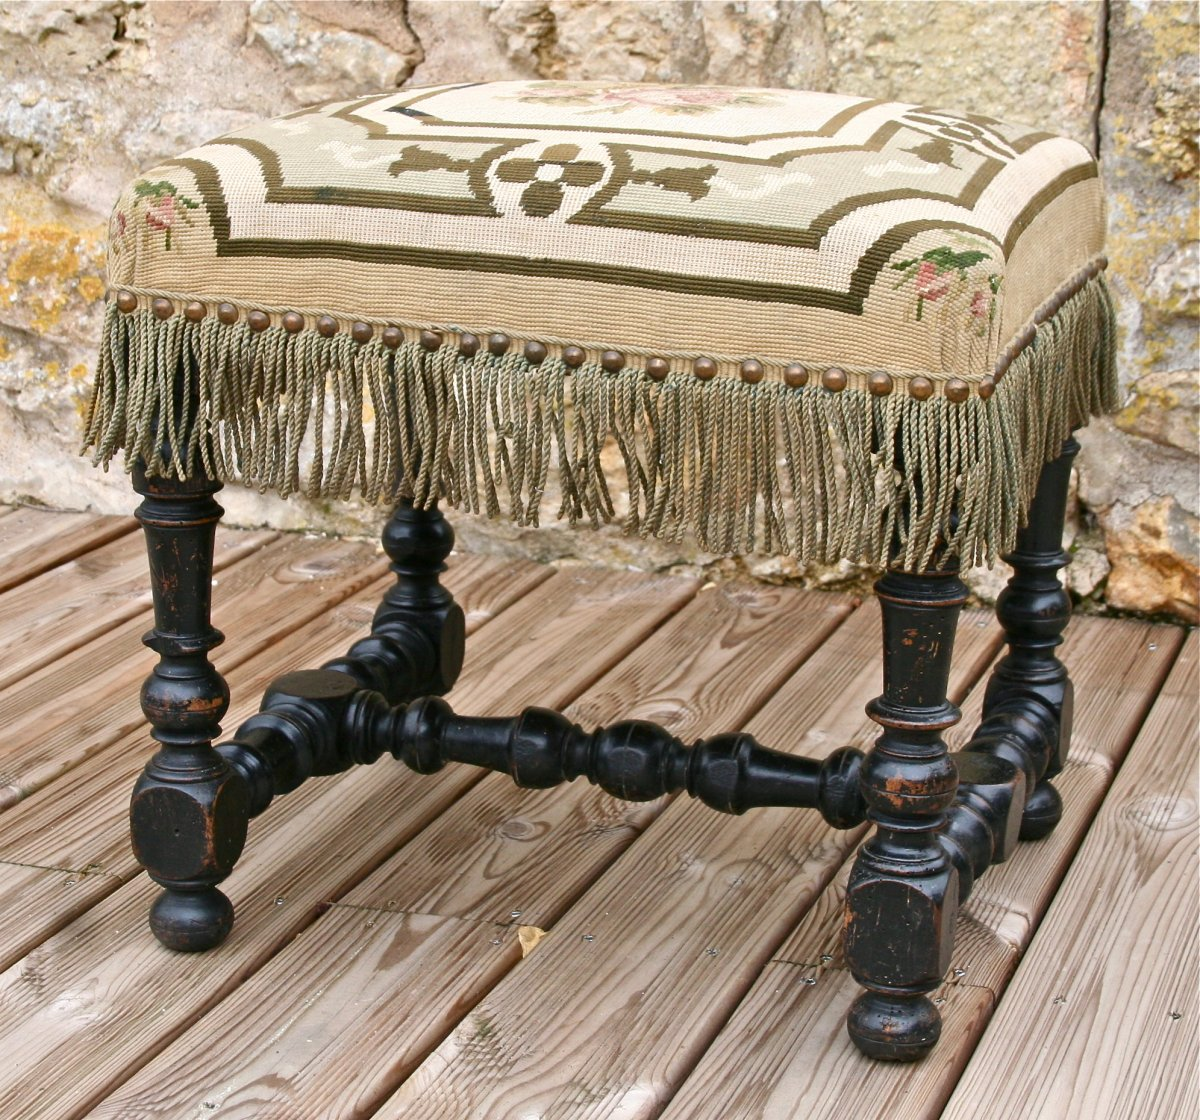 Louis XIV Stool From Eighteenth Period In Blackened Wood